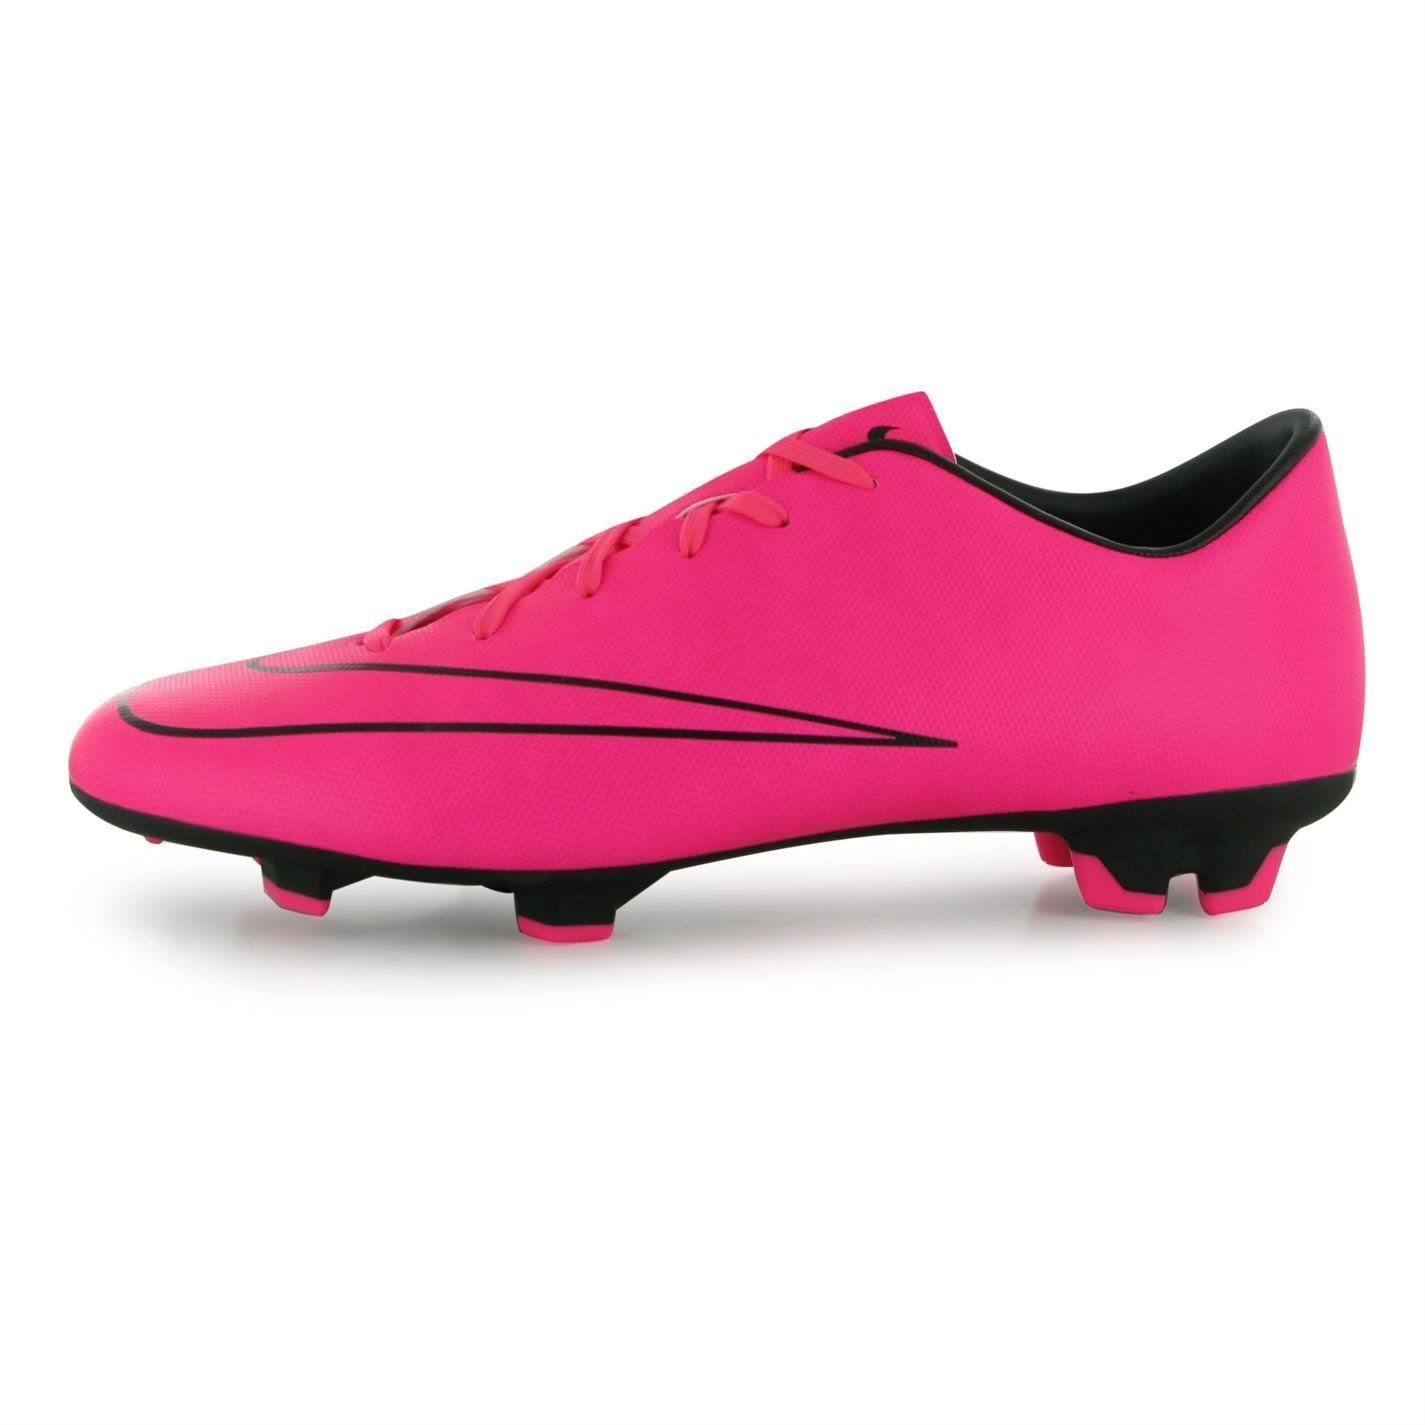 4a4292ac4b0 Get Quotations · Nike Mercurial Victory FG Firm Ground Football Boots Mens  Pink Soccer Cleats